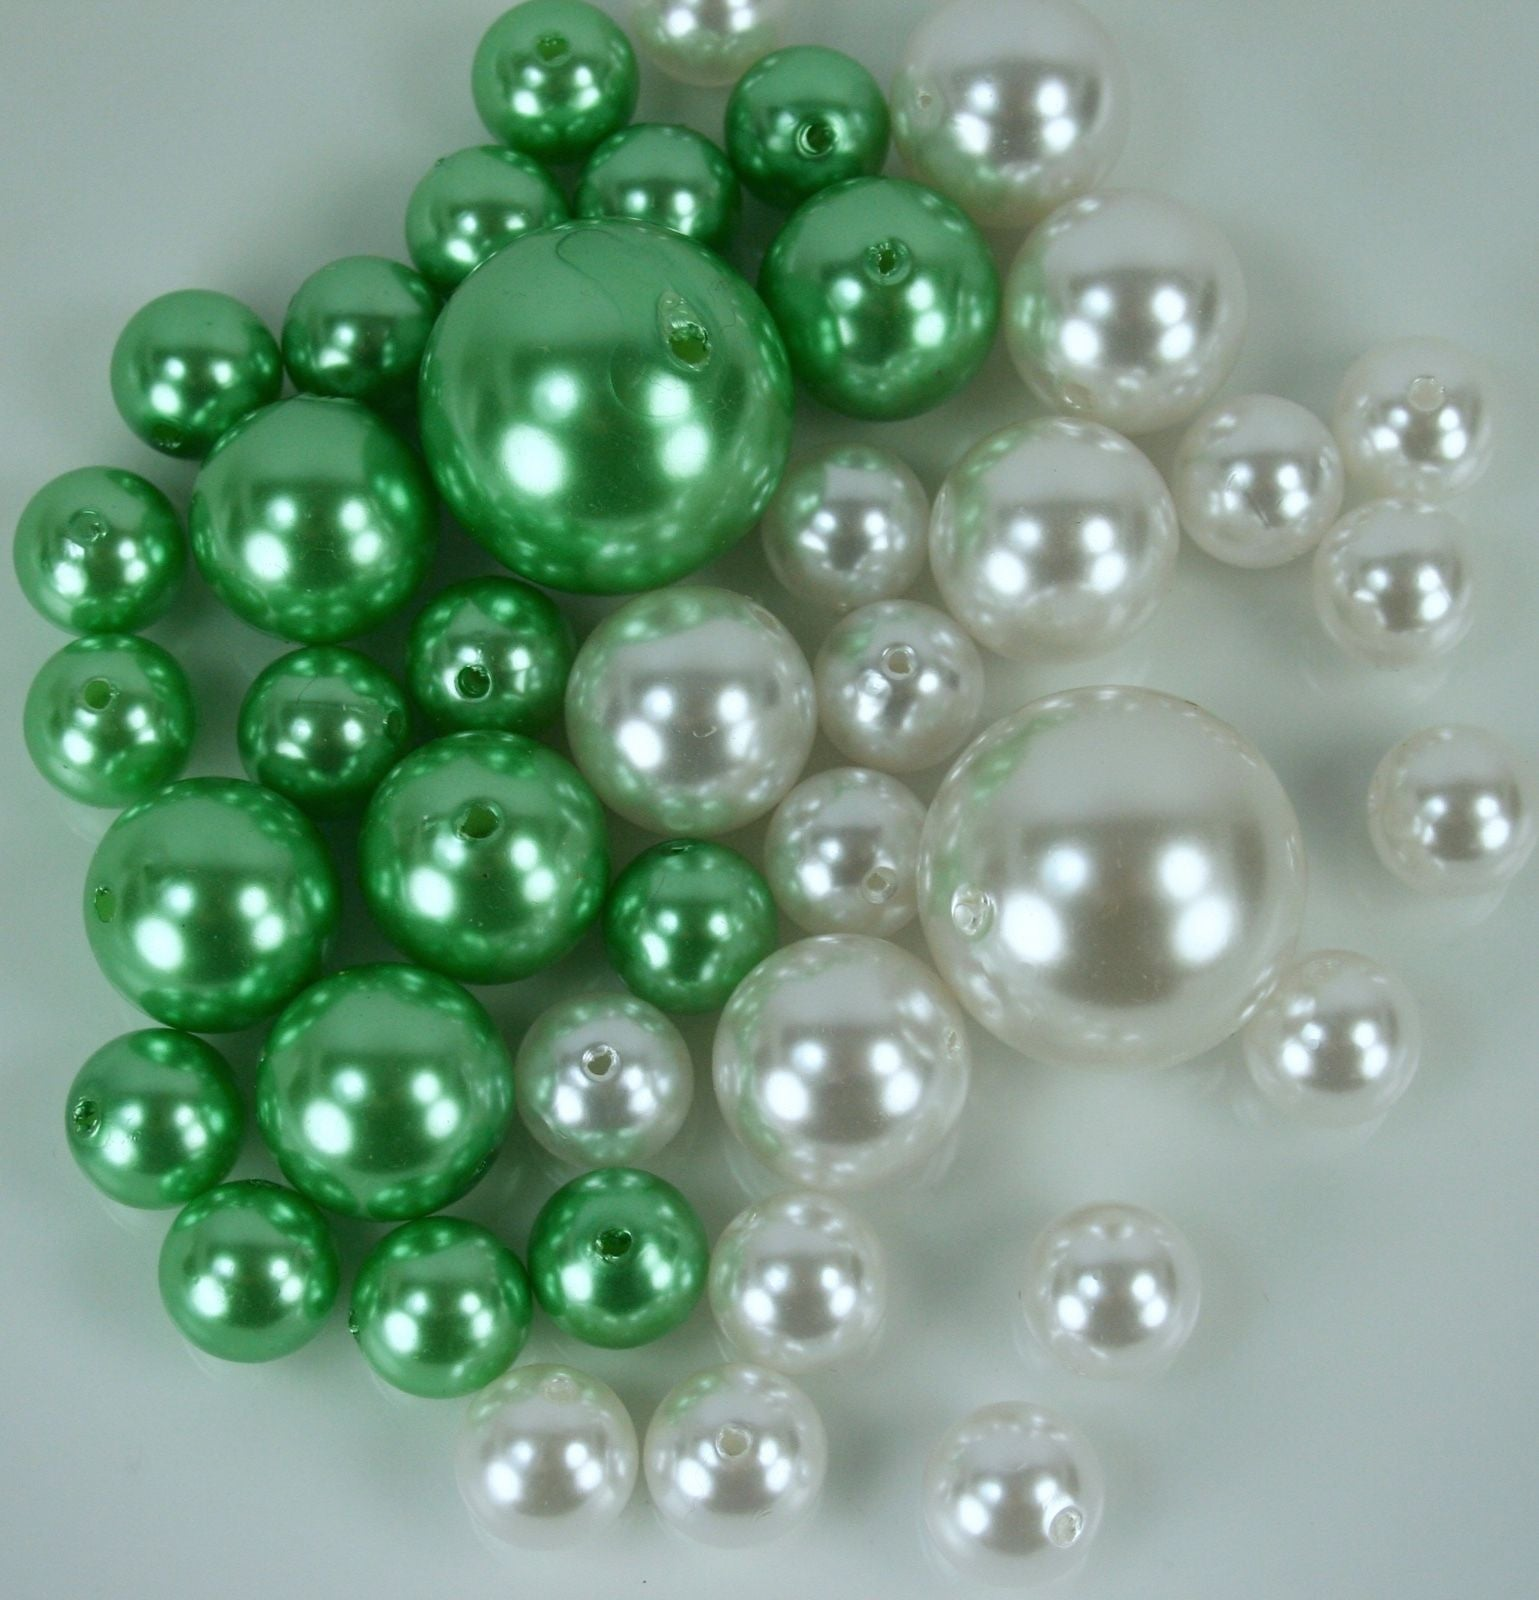 catalog page beads glass czechcuttranparent buy color seed wholesale crafts in site bulk